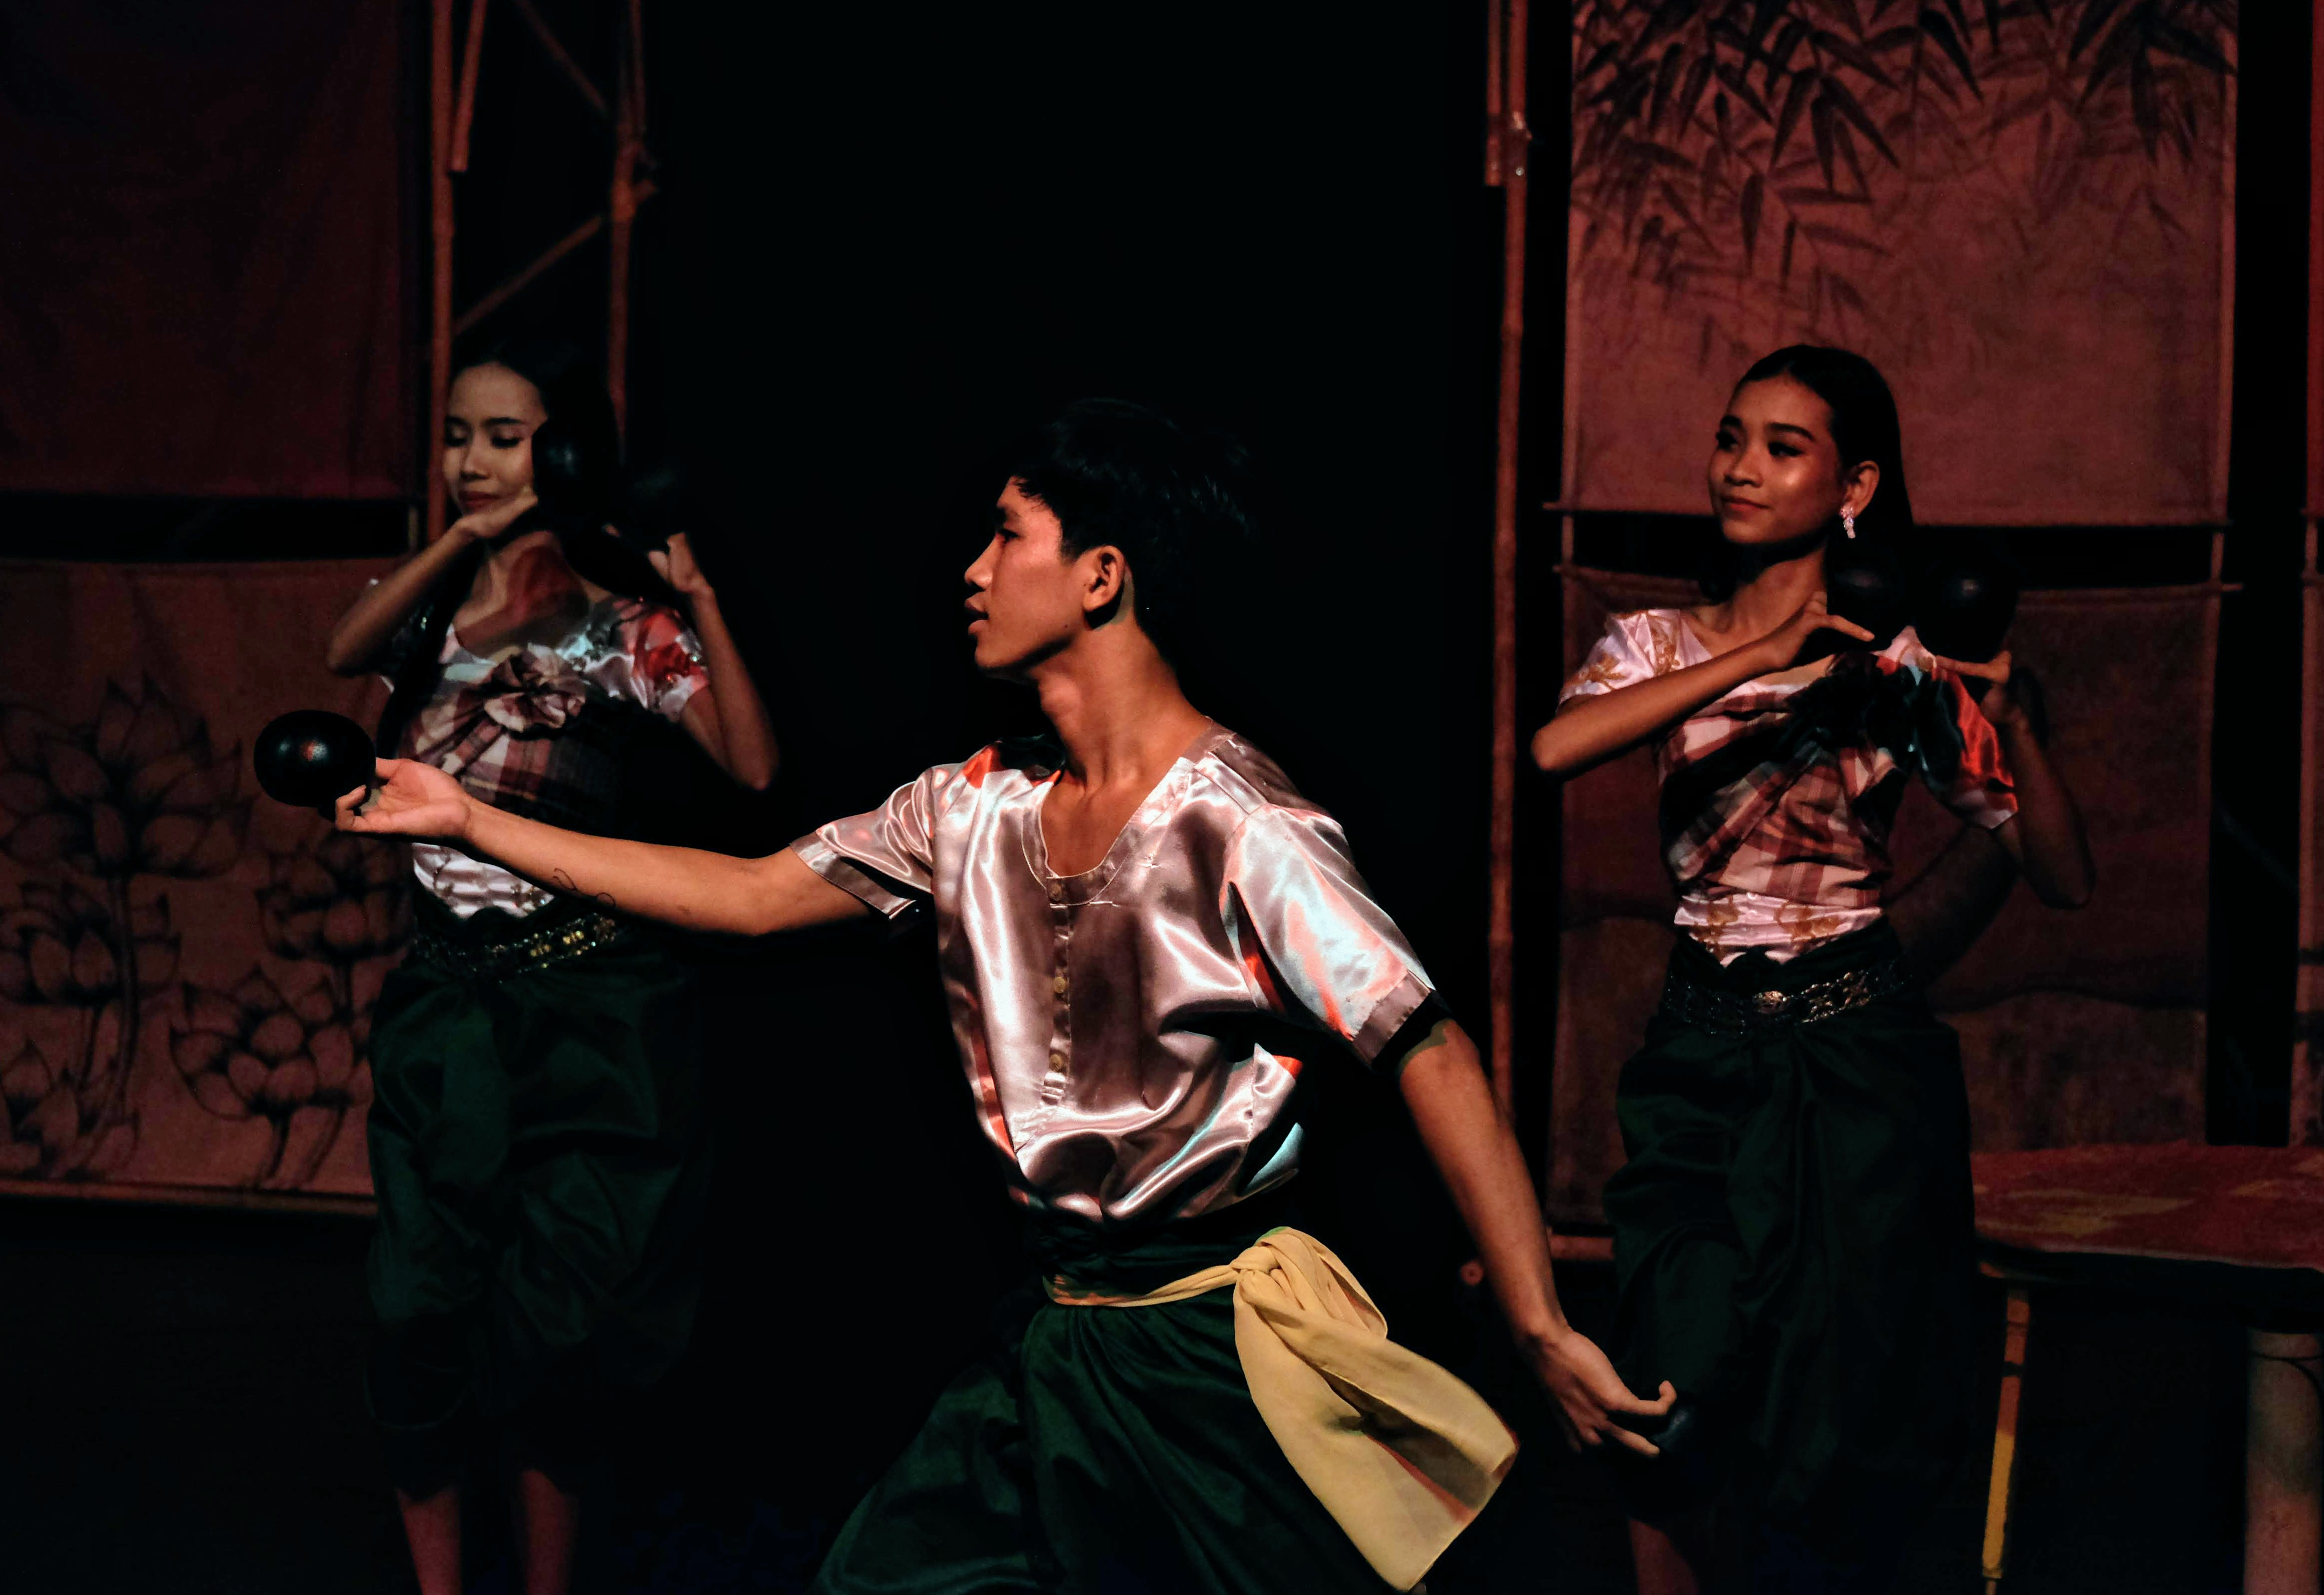 Performers at Phare Circus, Battambang, Cambodia